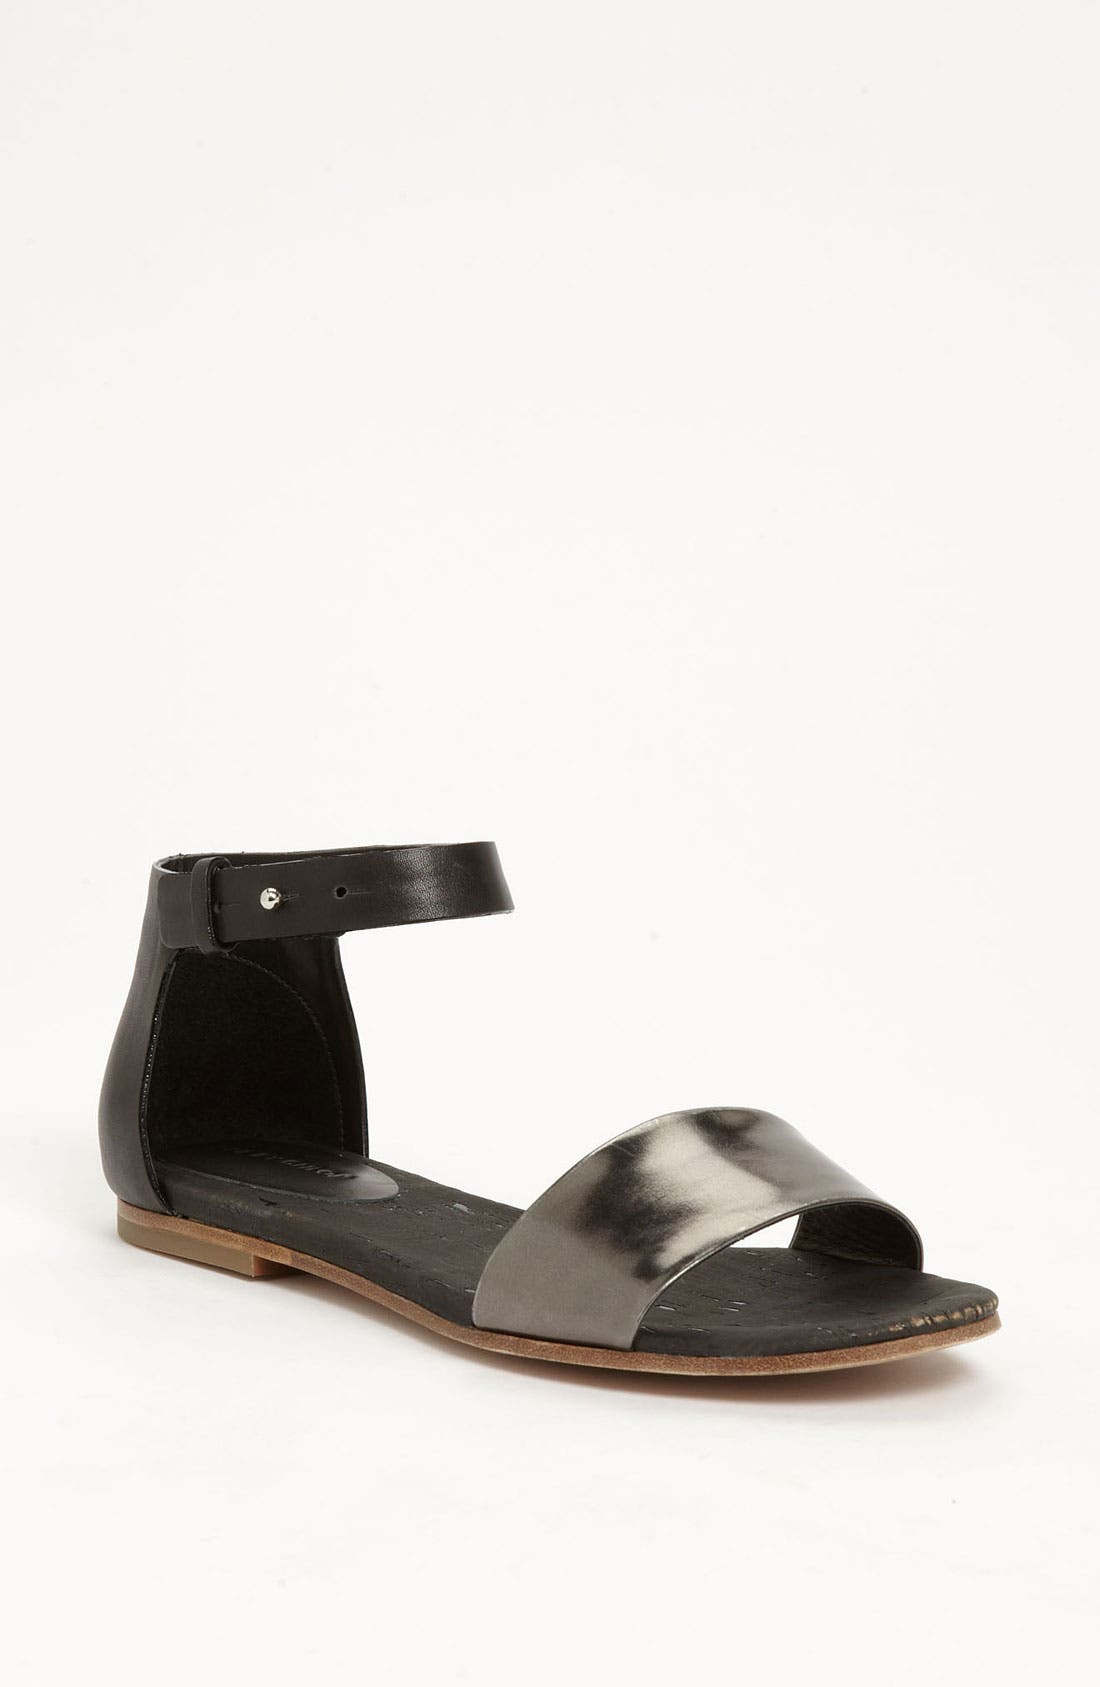 Main Image - See by Chloé 'Hera' Sandal